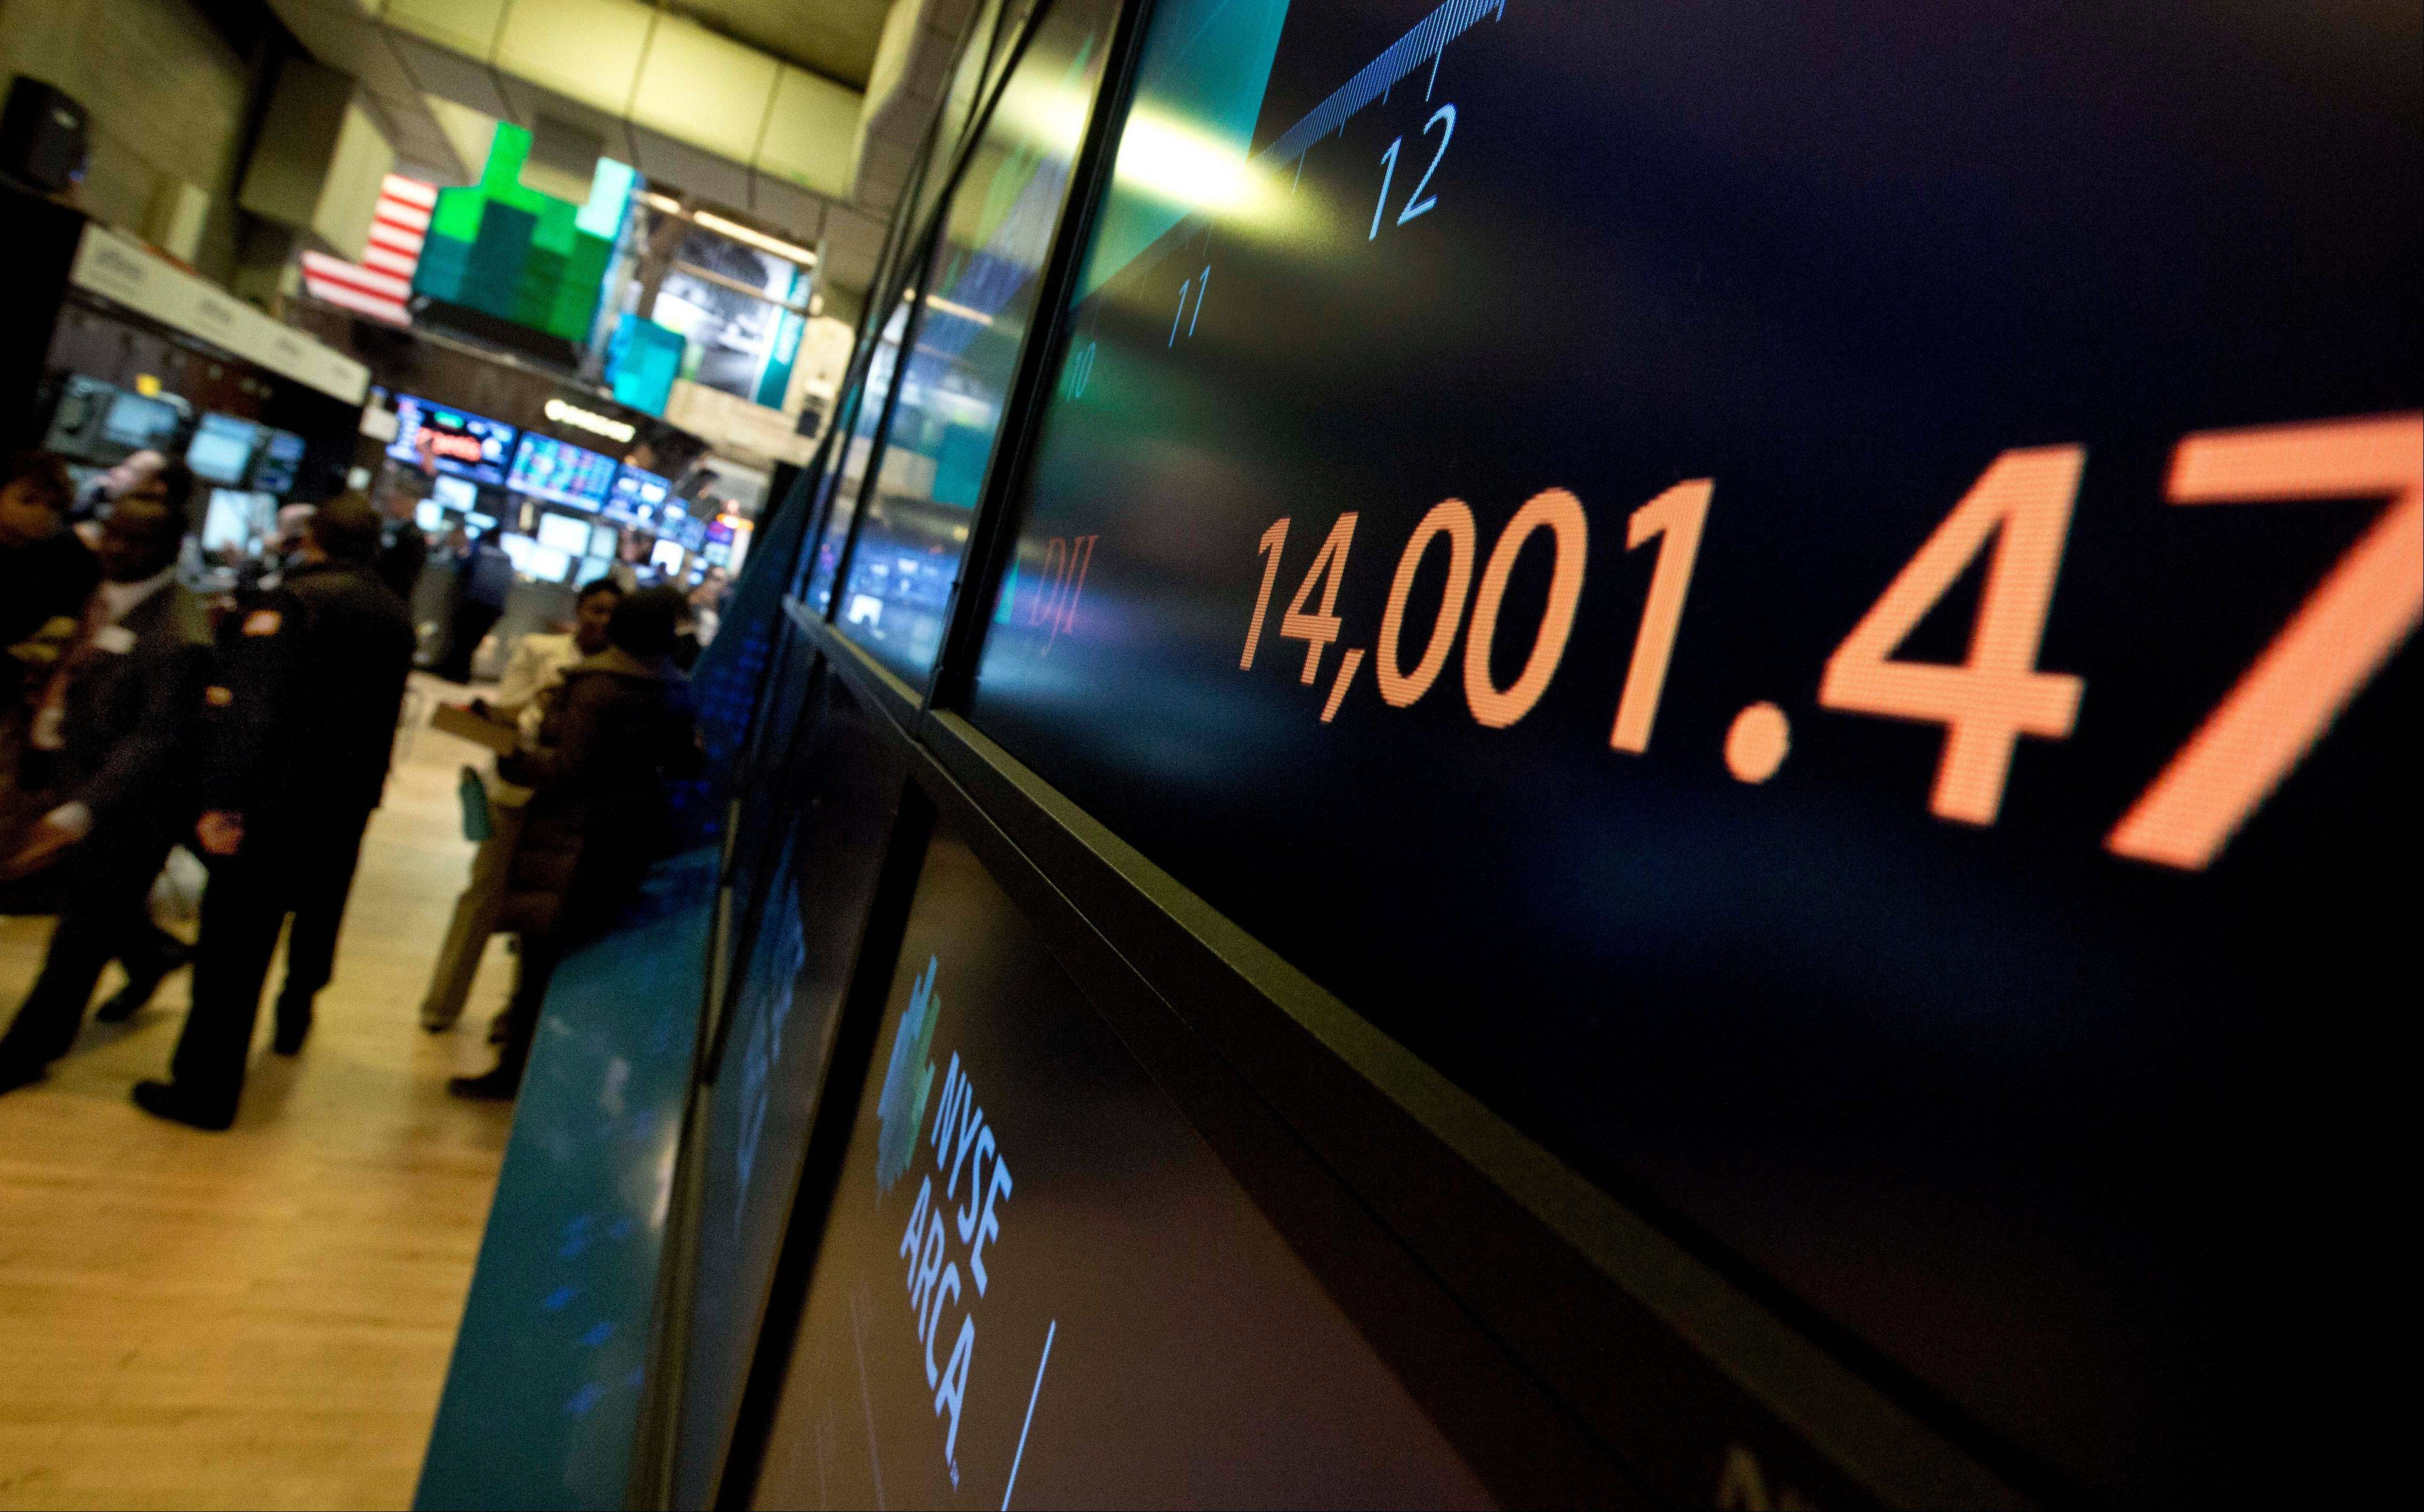 A screen on the trading floor of the New York Stock Exchange shows the Dow Jones industrial average above 14,000 for the first time since October 2007.